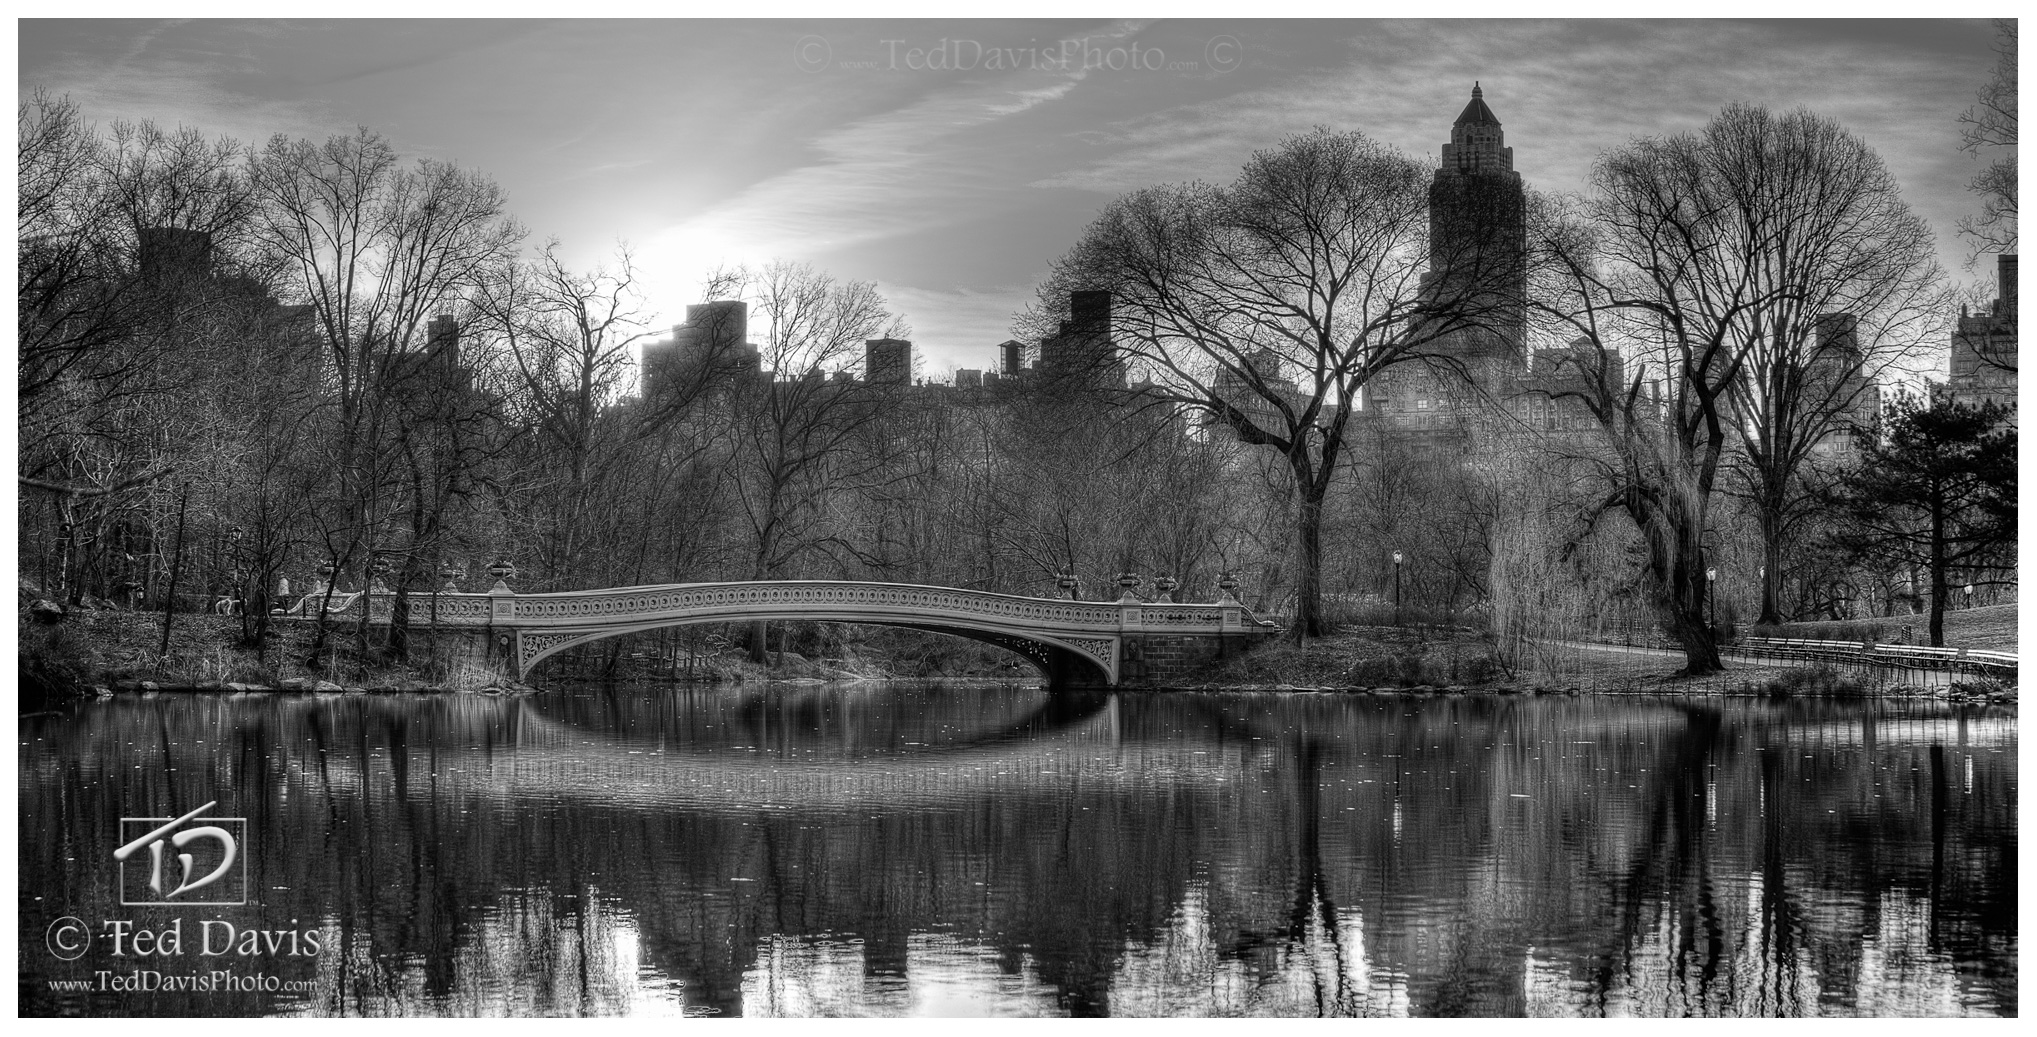 Limited Edition of 200 A timeless quality caught me on an early spring morning in New York City's Central Park. The reflection...